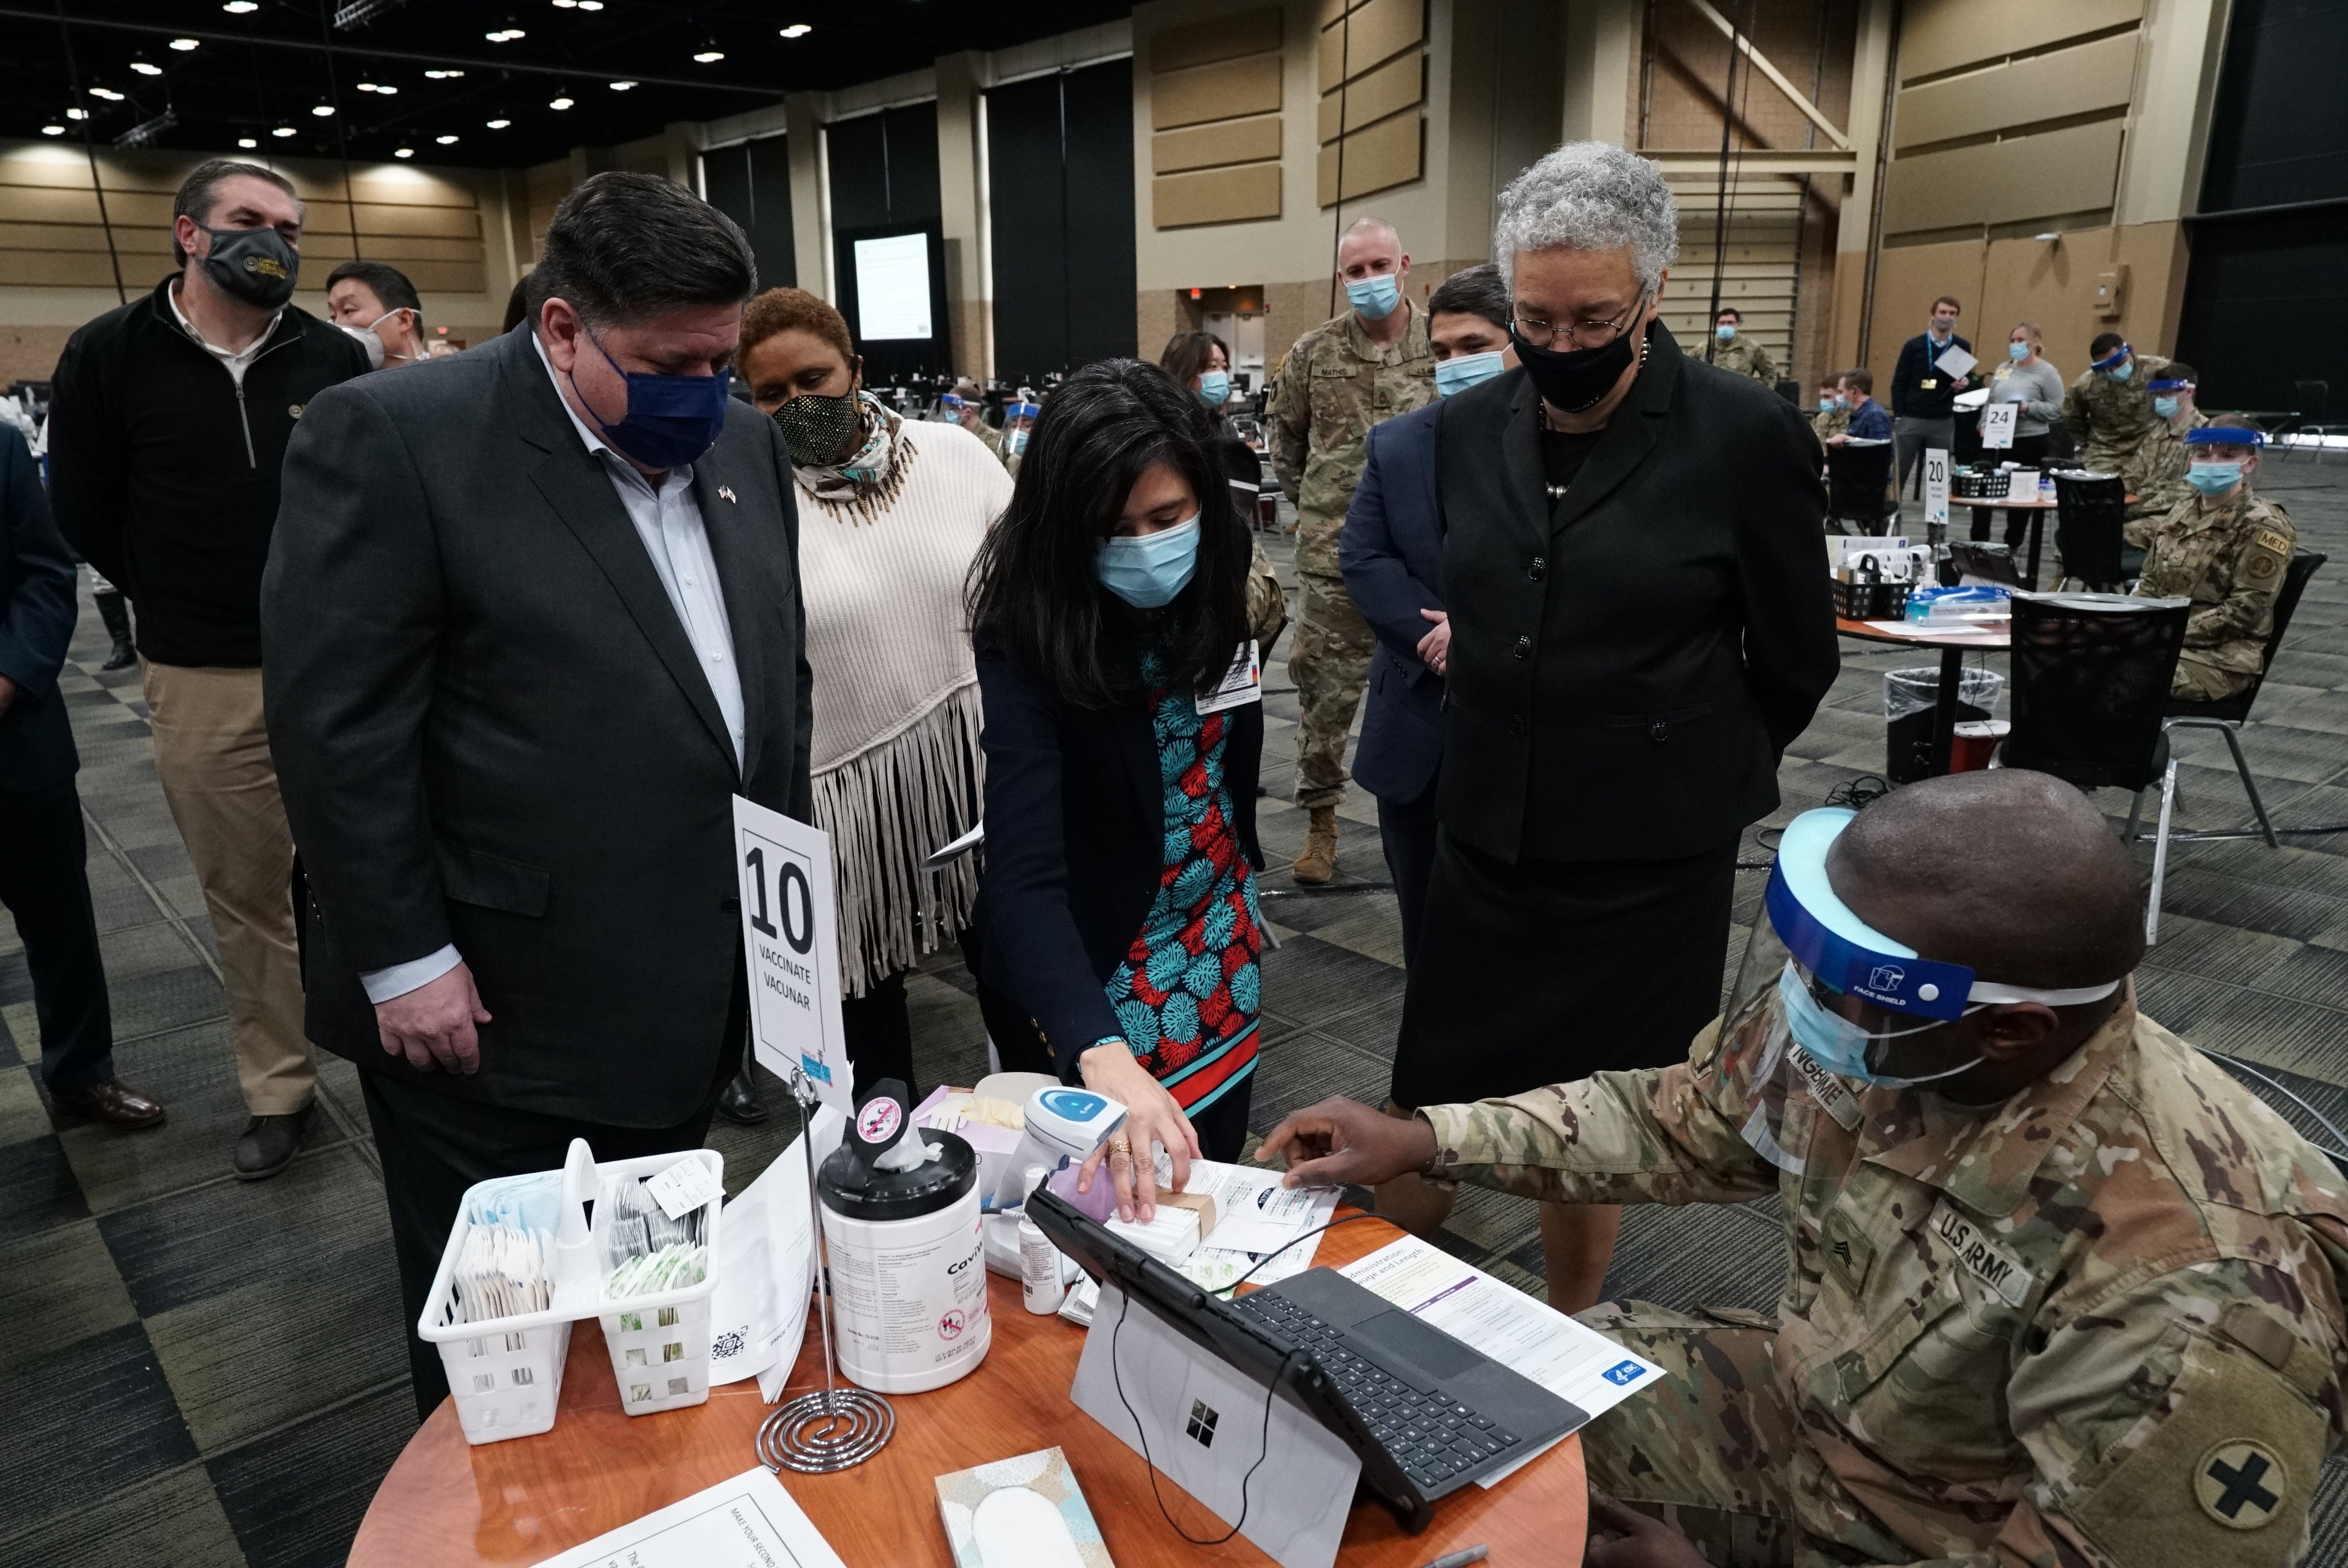 Gov. J.B. Pritzker, Cook County Board President Toni Preckwinkle and other elected official at a  large-scale vaccination in the Tinley Park Convention Center last month.